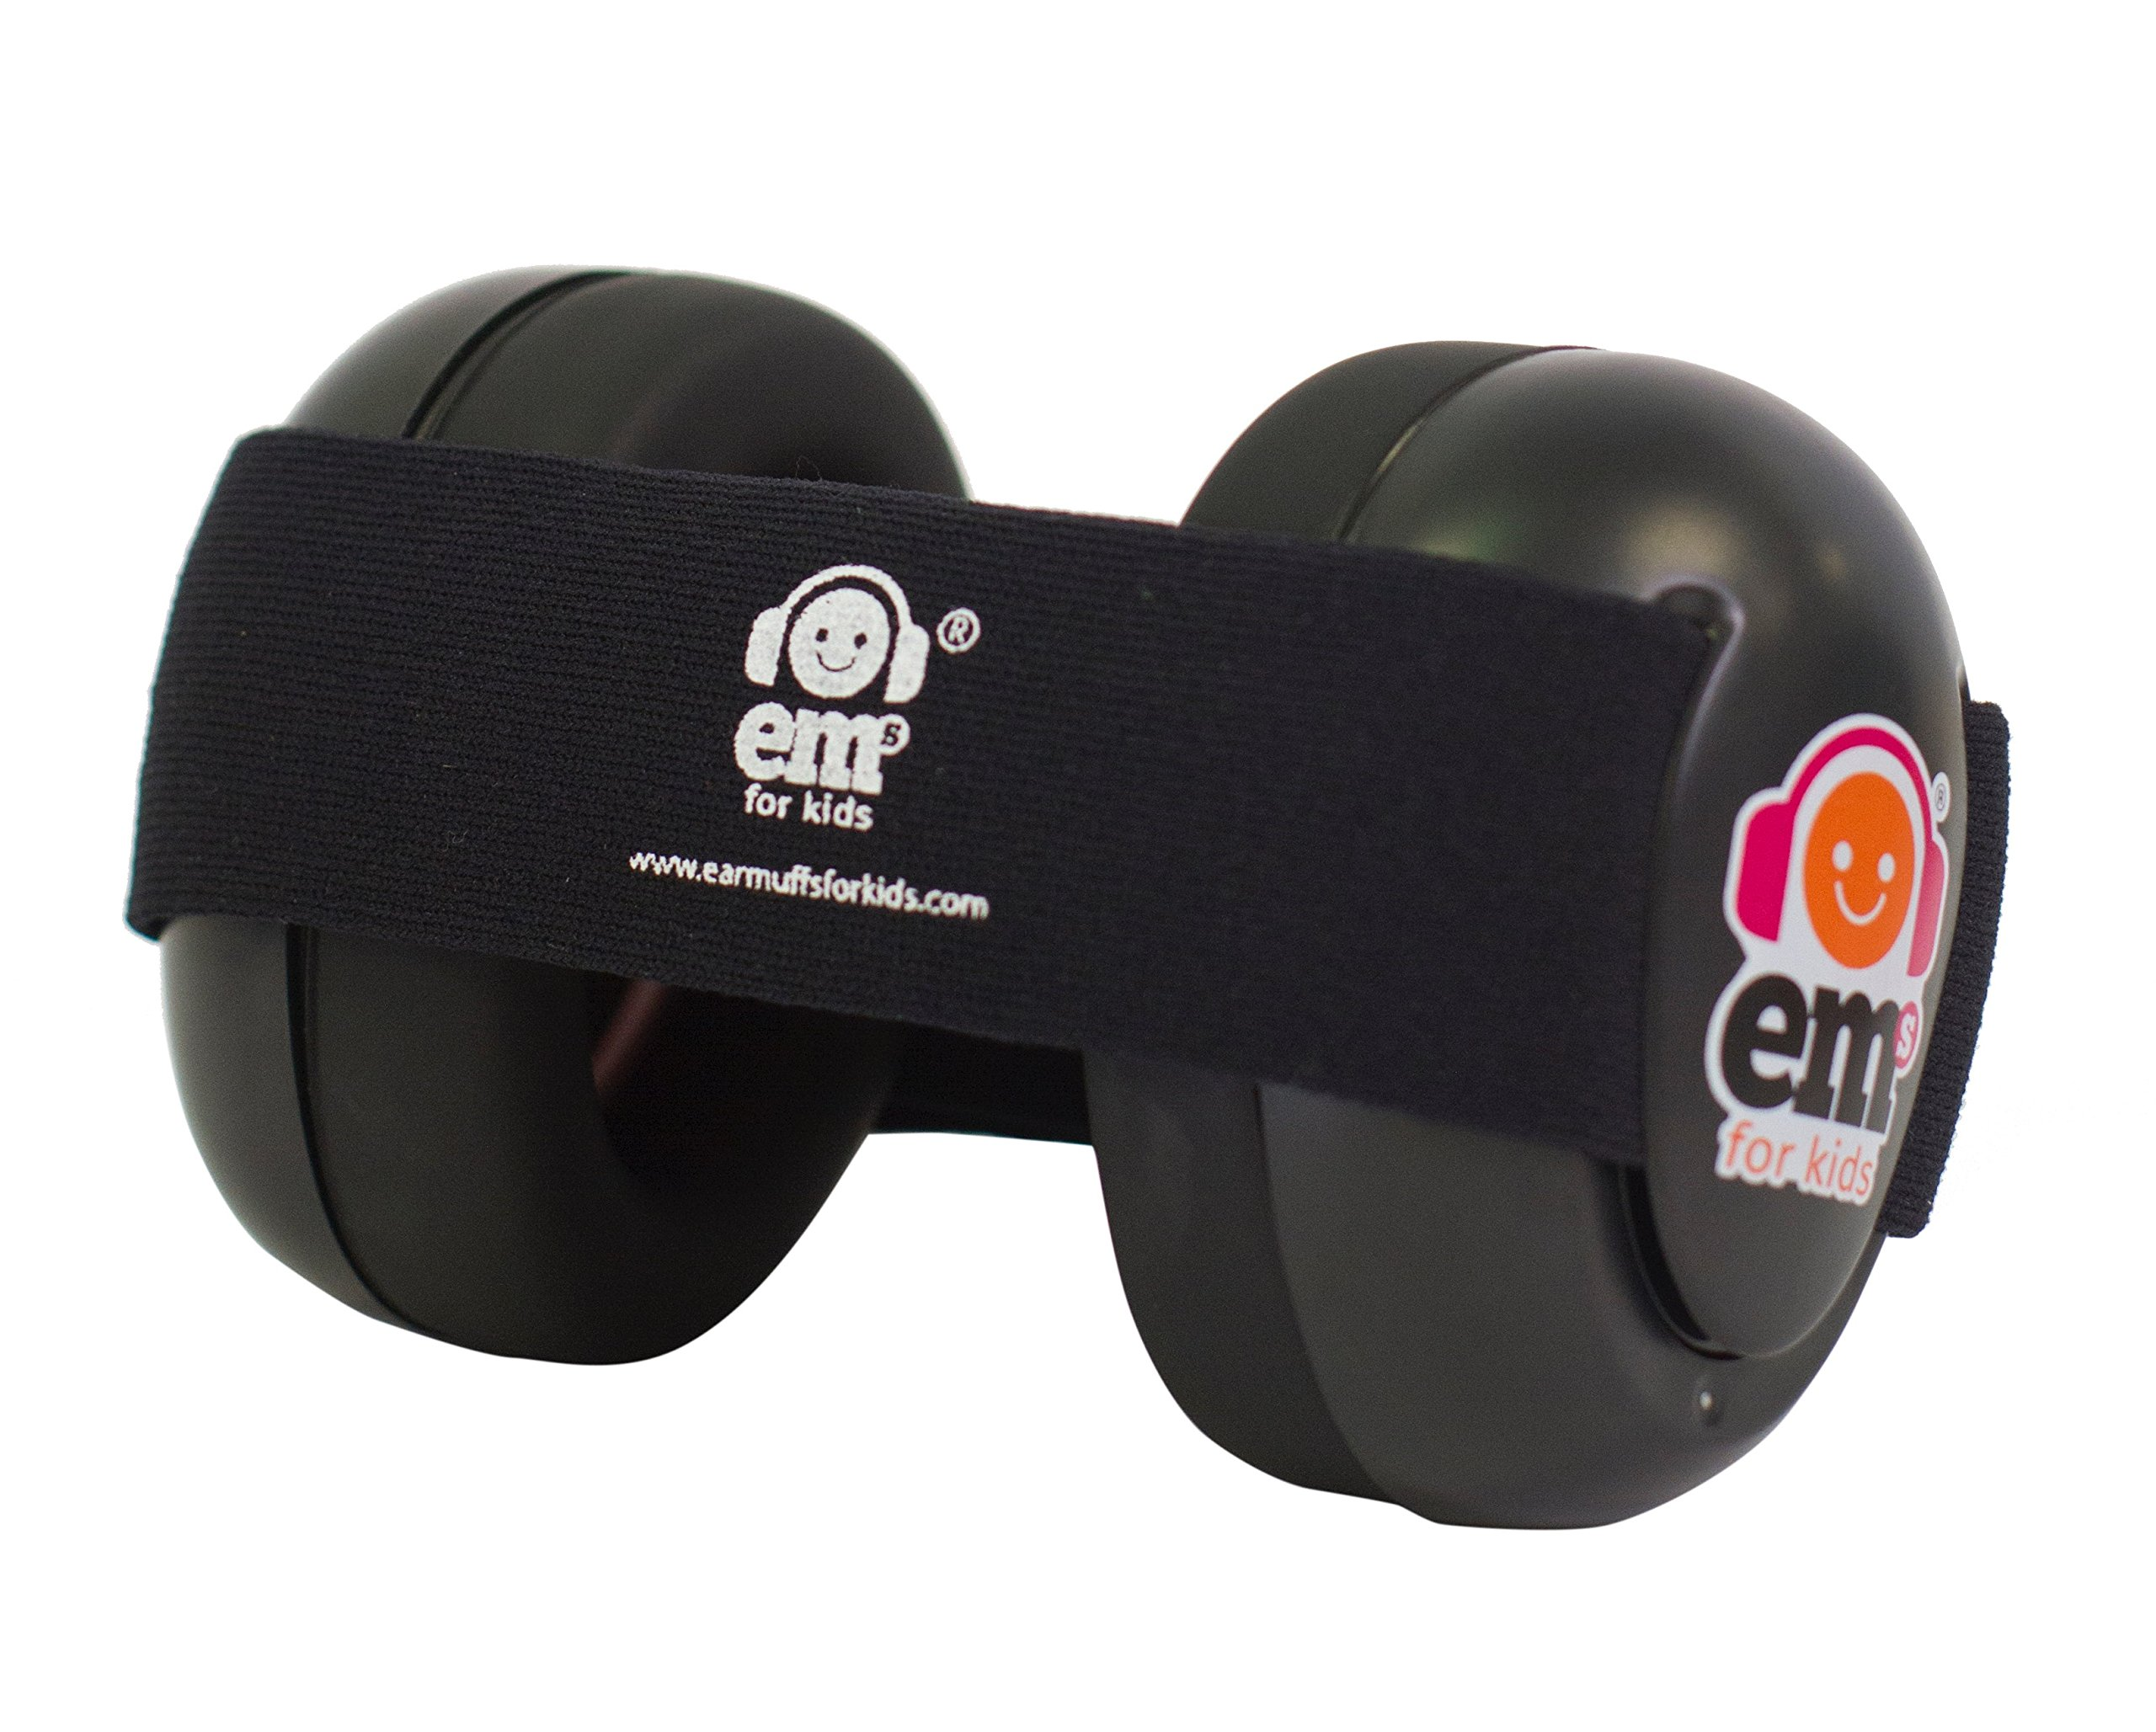 Ems for Kids Baby Earmuffs - Black with Black. Made in The U.S.A! The Original and ONLY Earmuffs Designed specifically for Babies Since 2009